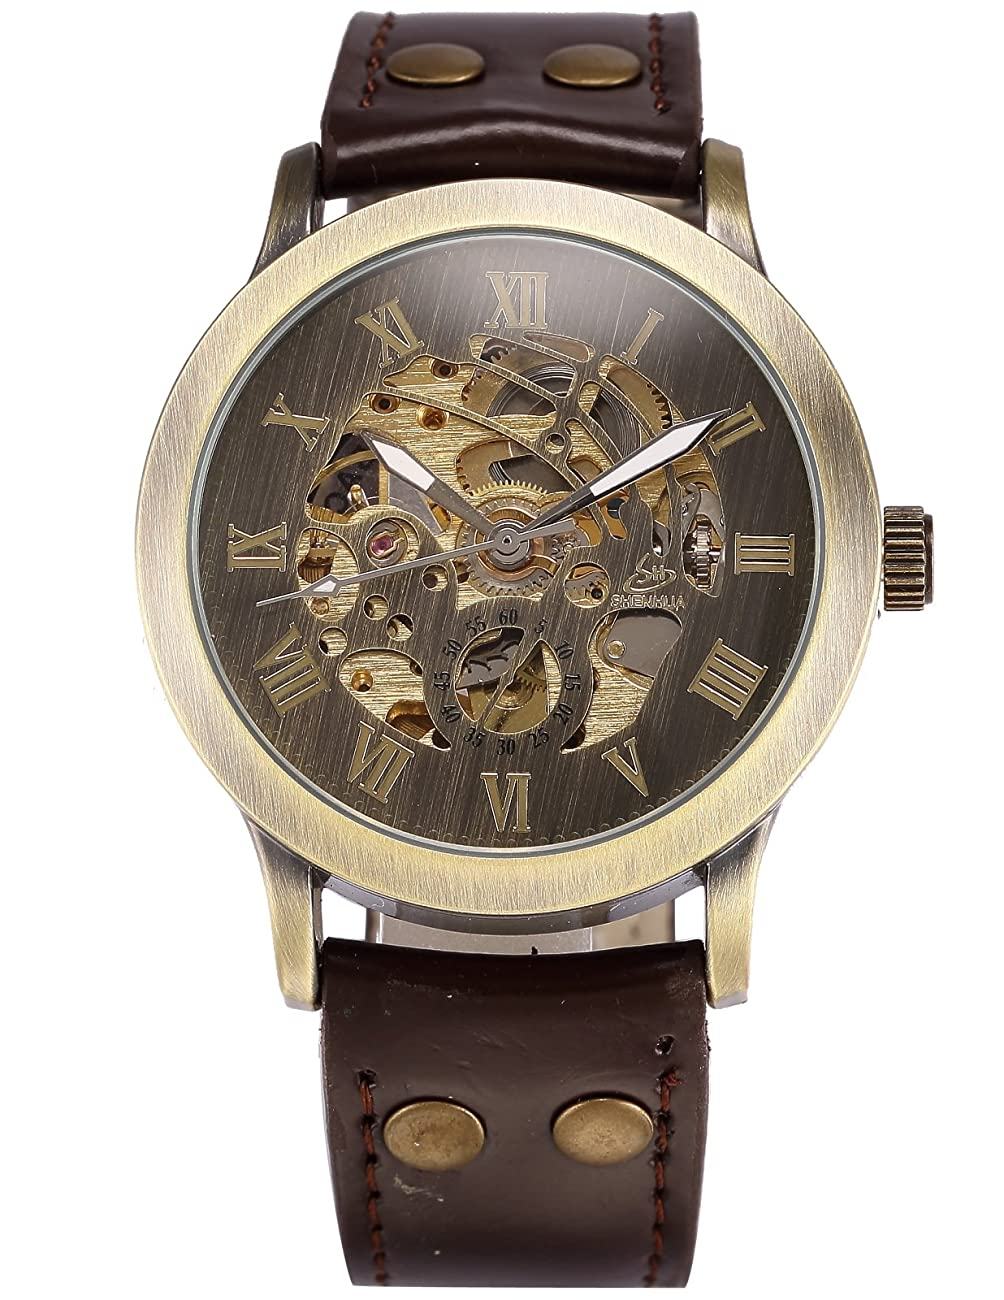 AMPM24 Men's Steampunk Bronze Skeleton Self-Winding Auto Mechanical Leather Wrist Watch PMW198 1